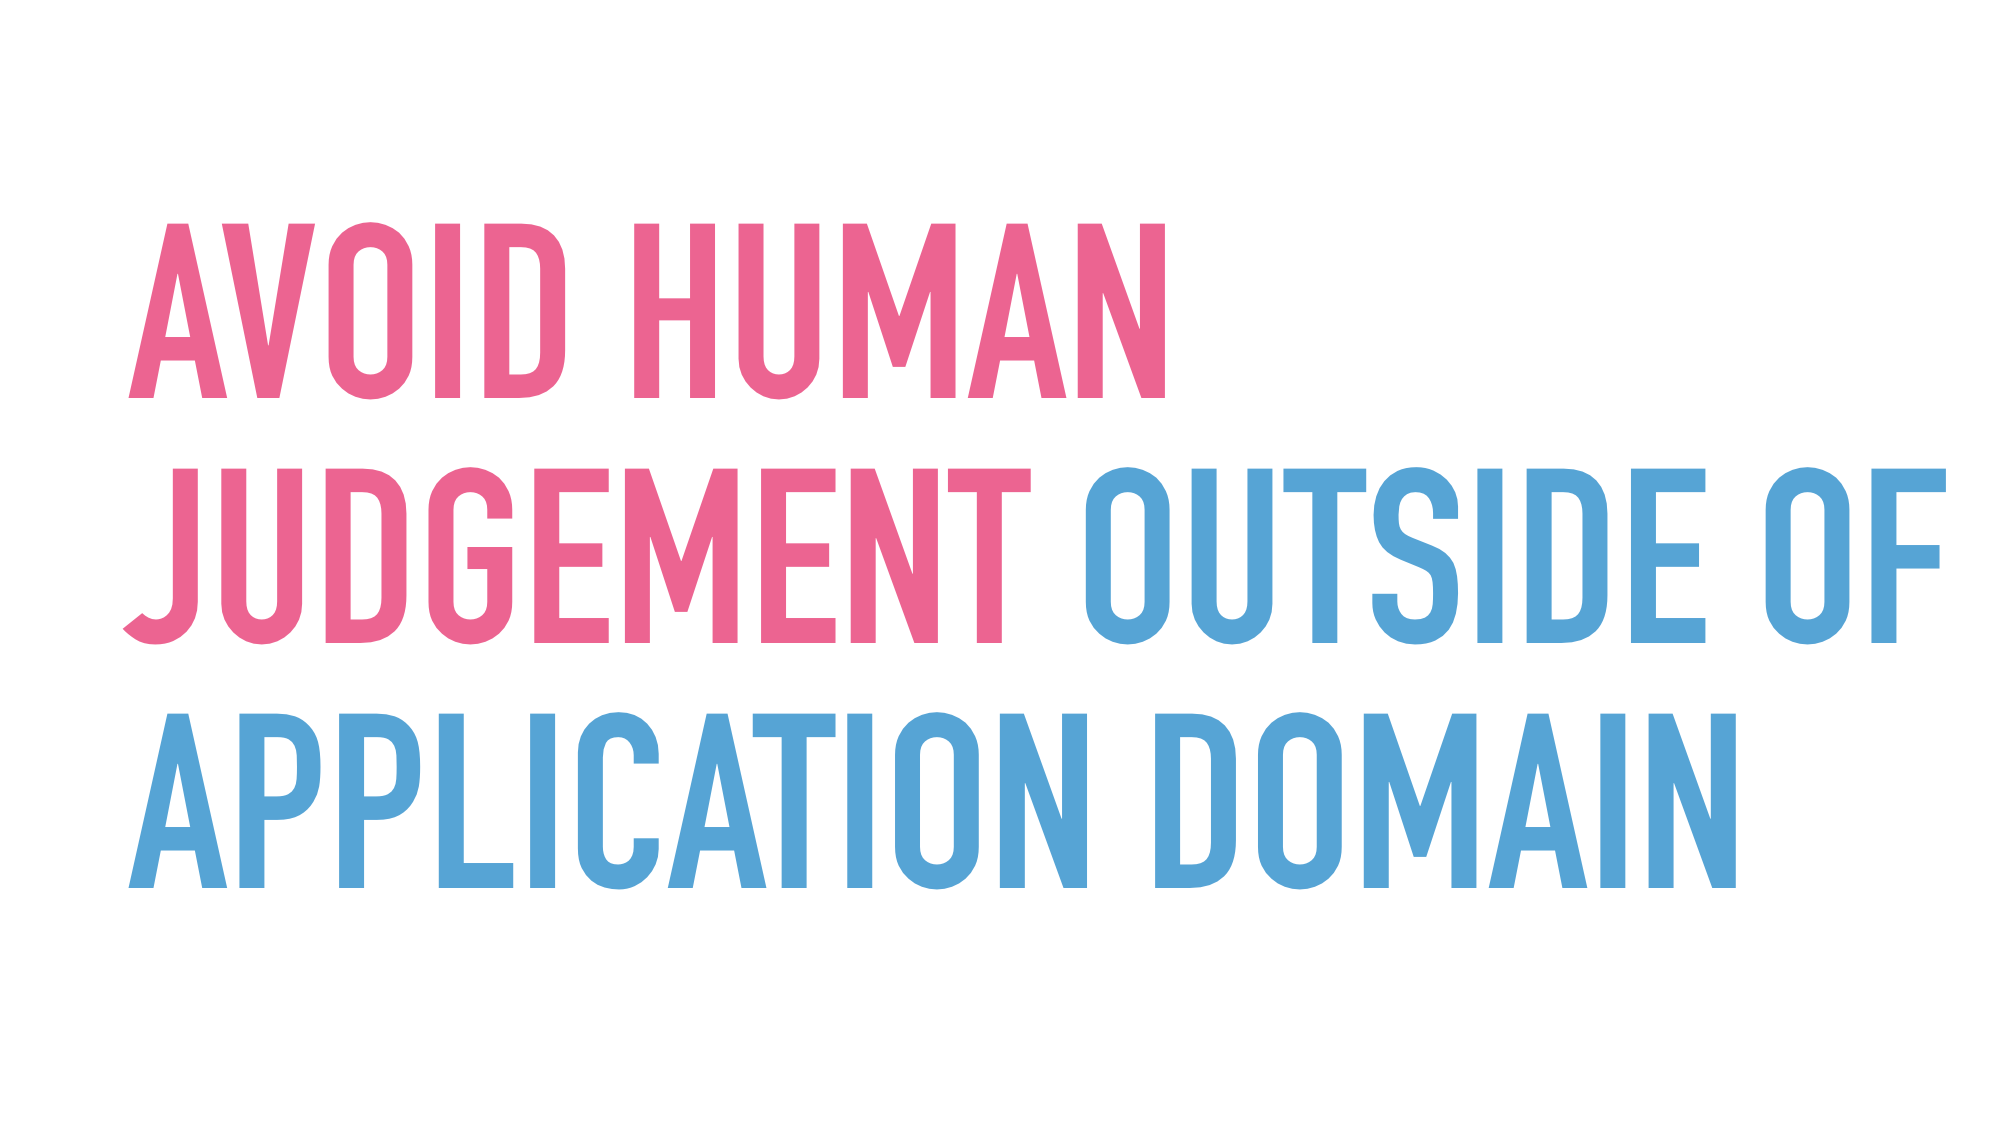 Slide text: Avoid human judgement outside of application domain.